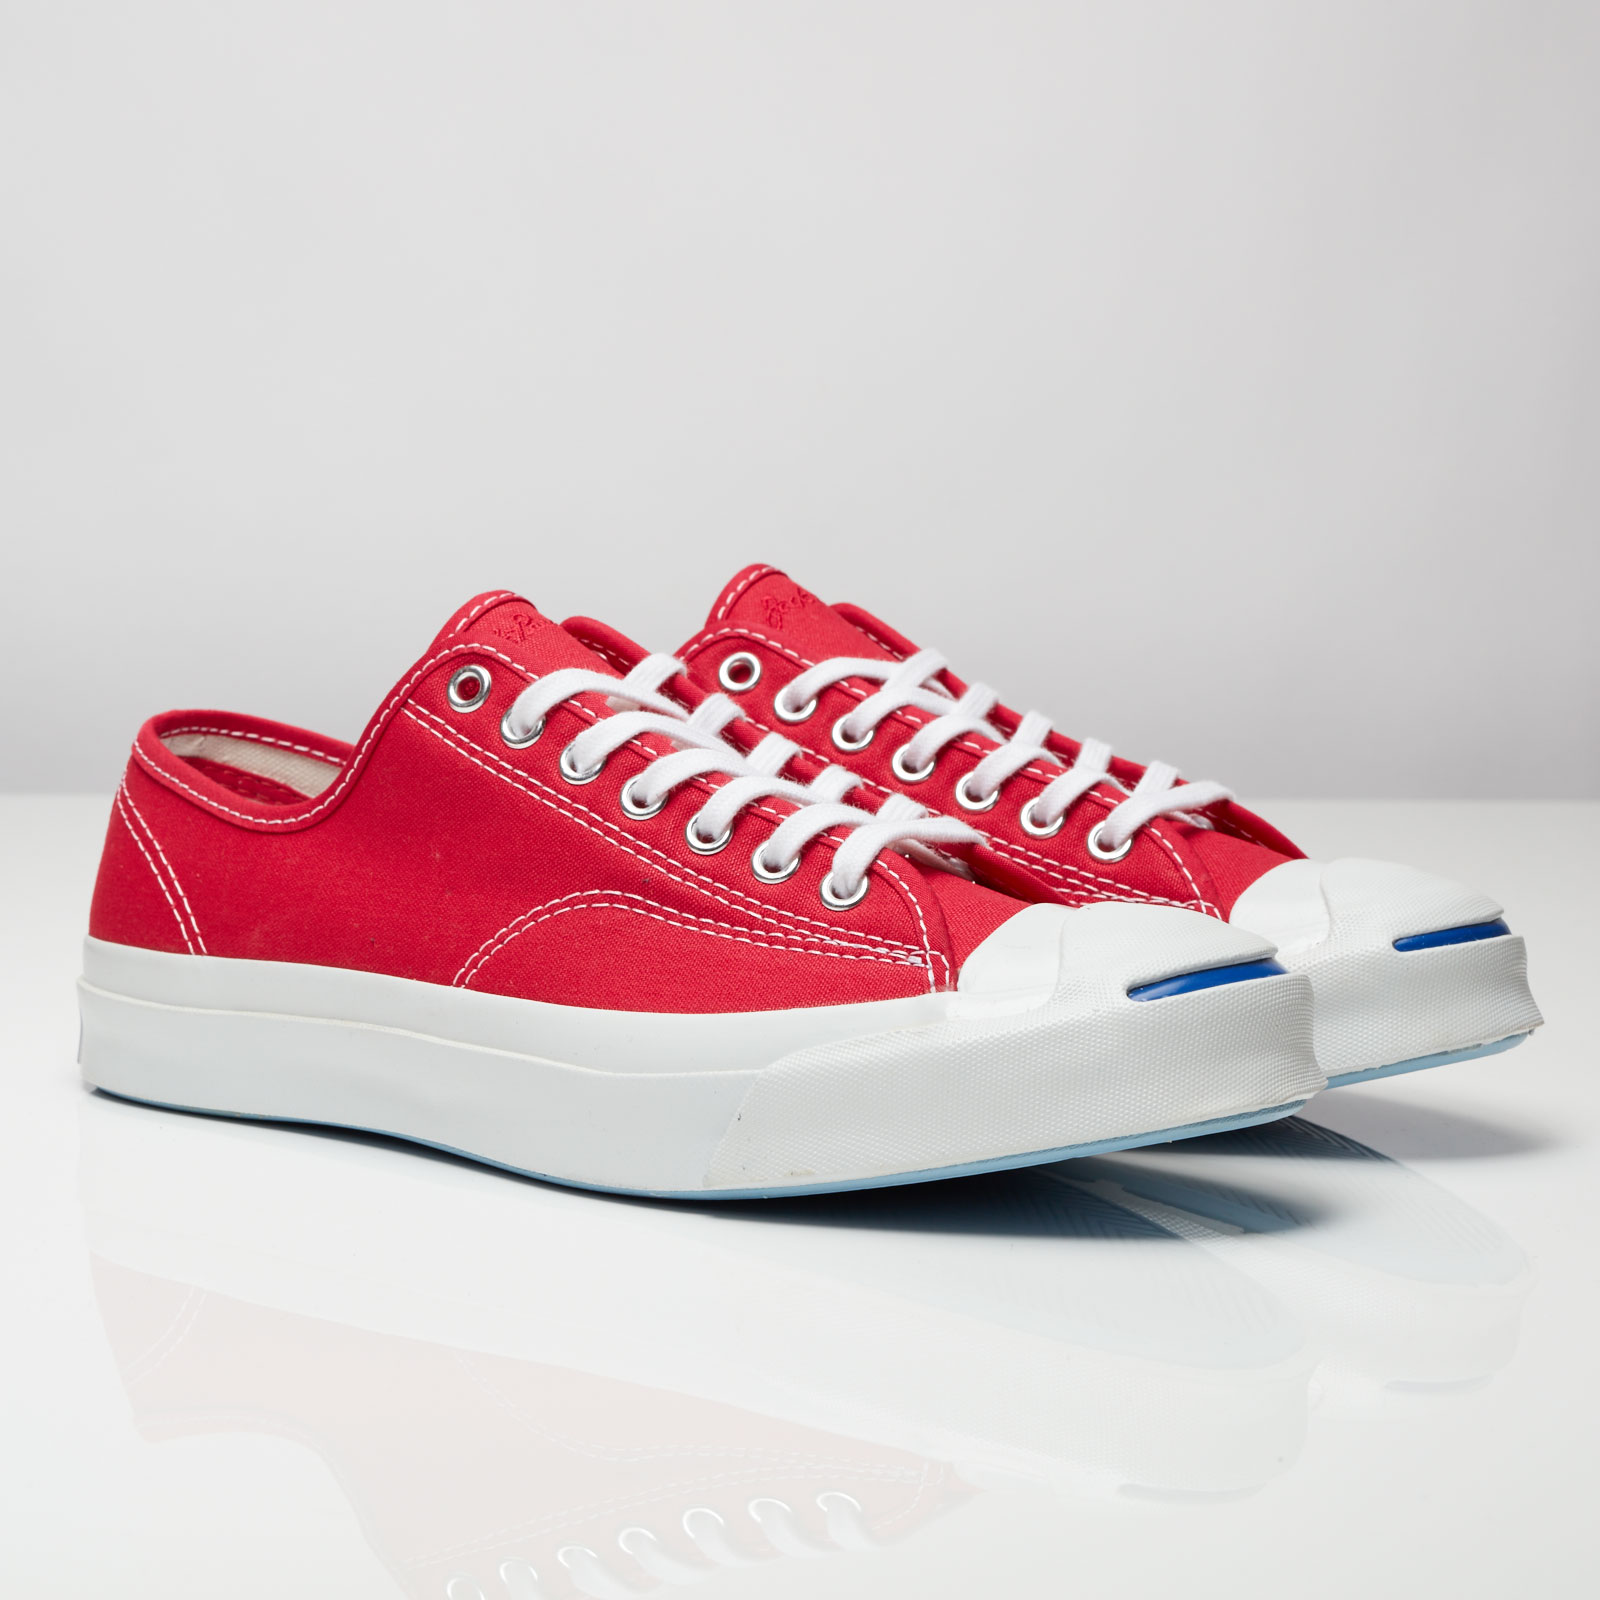 6358f4abfdbbf4 ... new style converse jack purcell signature duck canvas 2078f 7fbf3  release date converse red ...